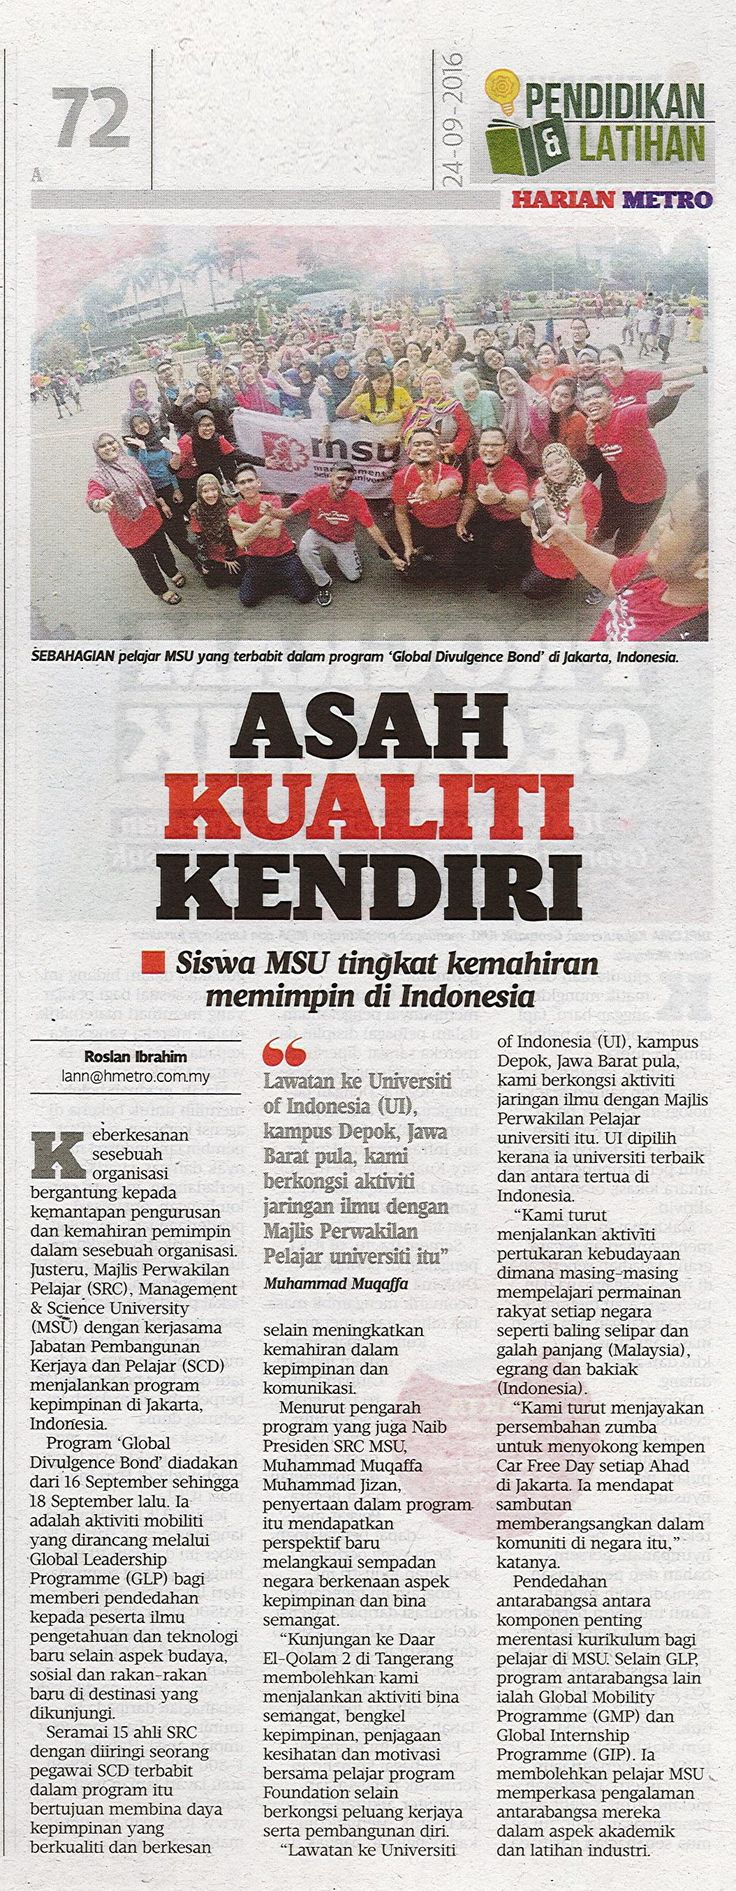 Students Representative Council (SRC) in collaboration with Students Career Development (SCD) recently held Global Divulgence Bond programme at Jakarta, Indonesia.  The leadership program was in conjunction with Global Leadership Program (GLP).  Harian Metro, 24 September 2016